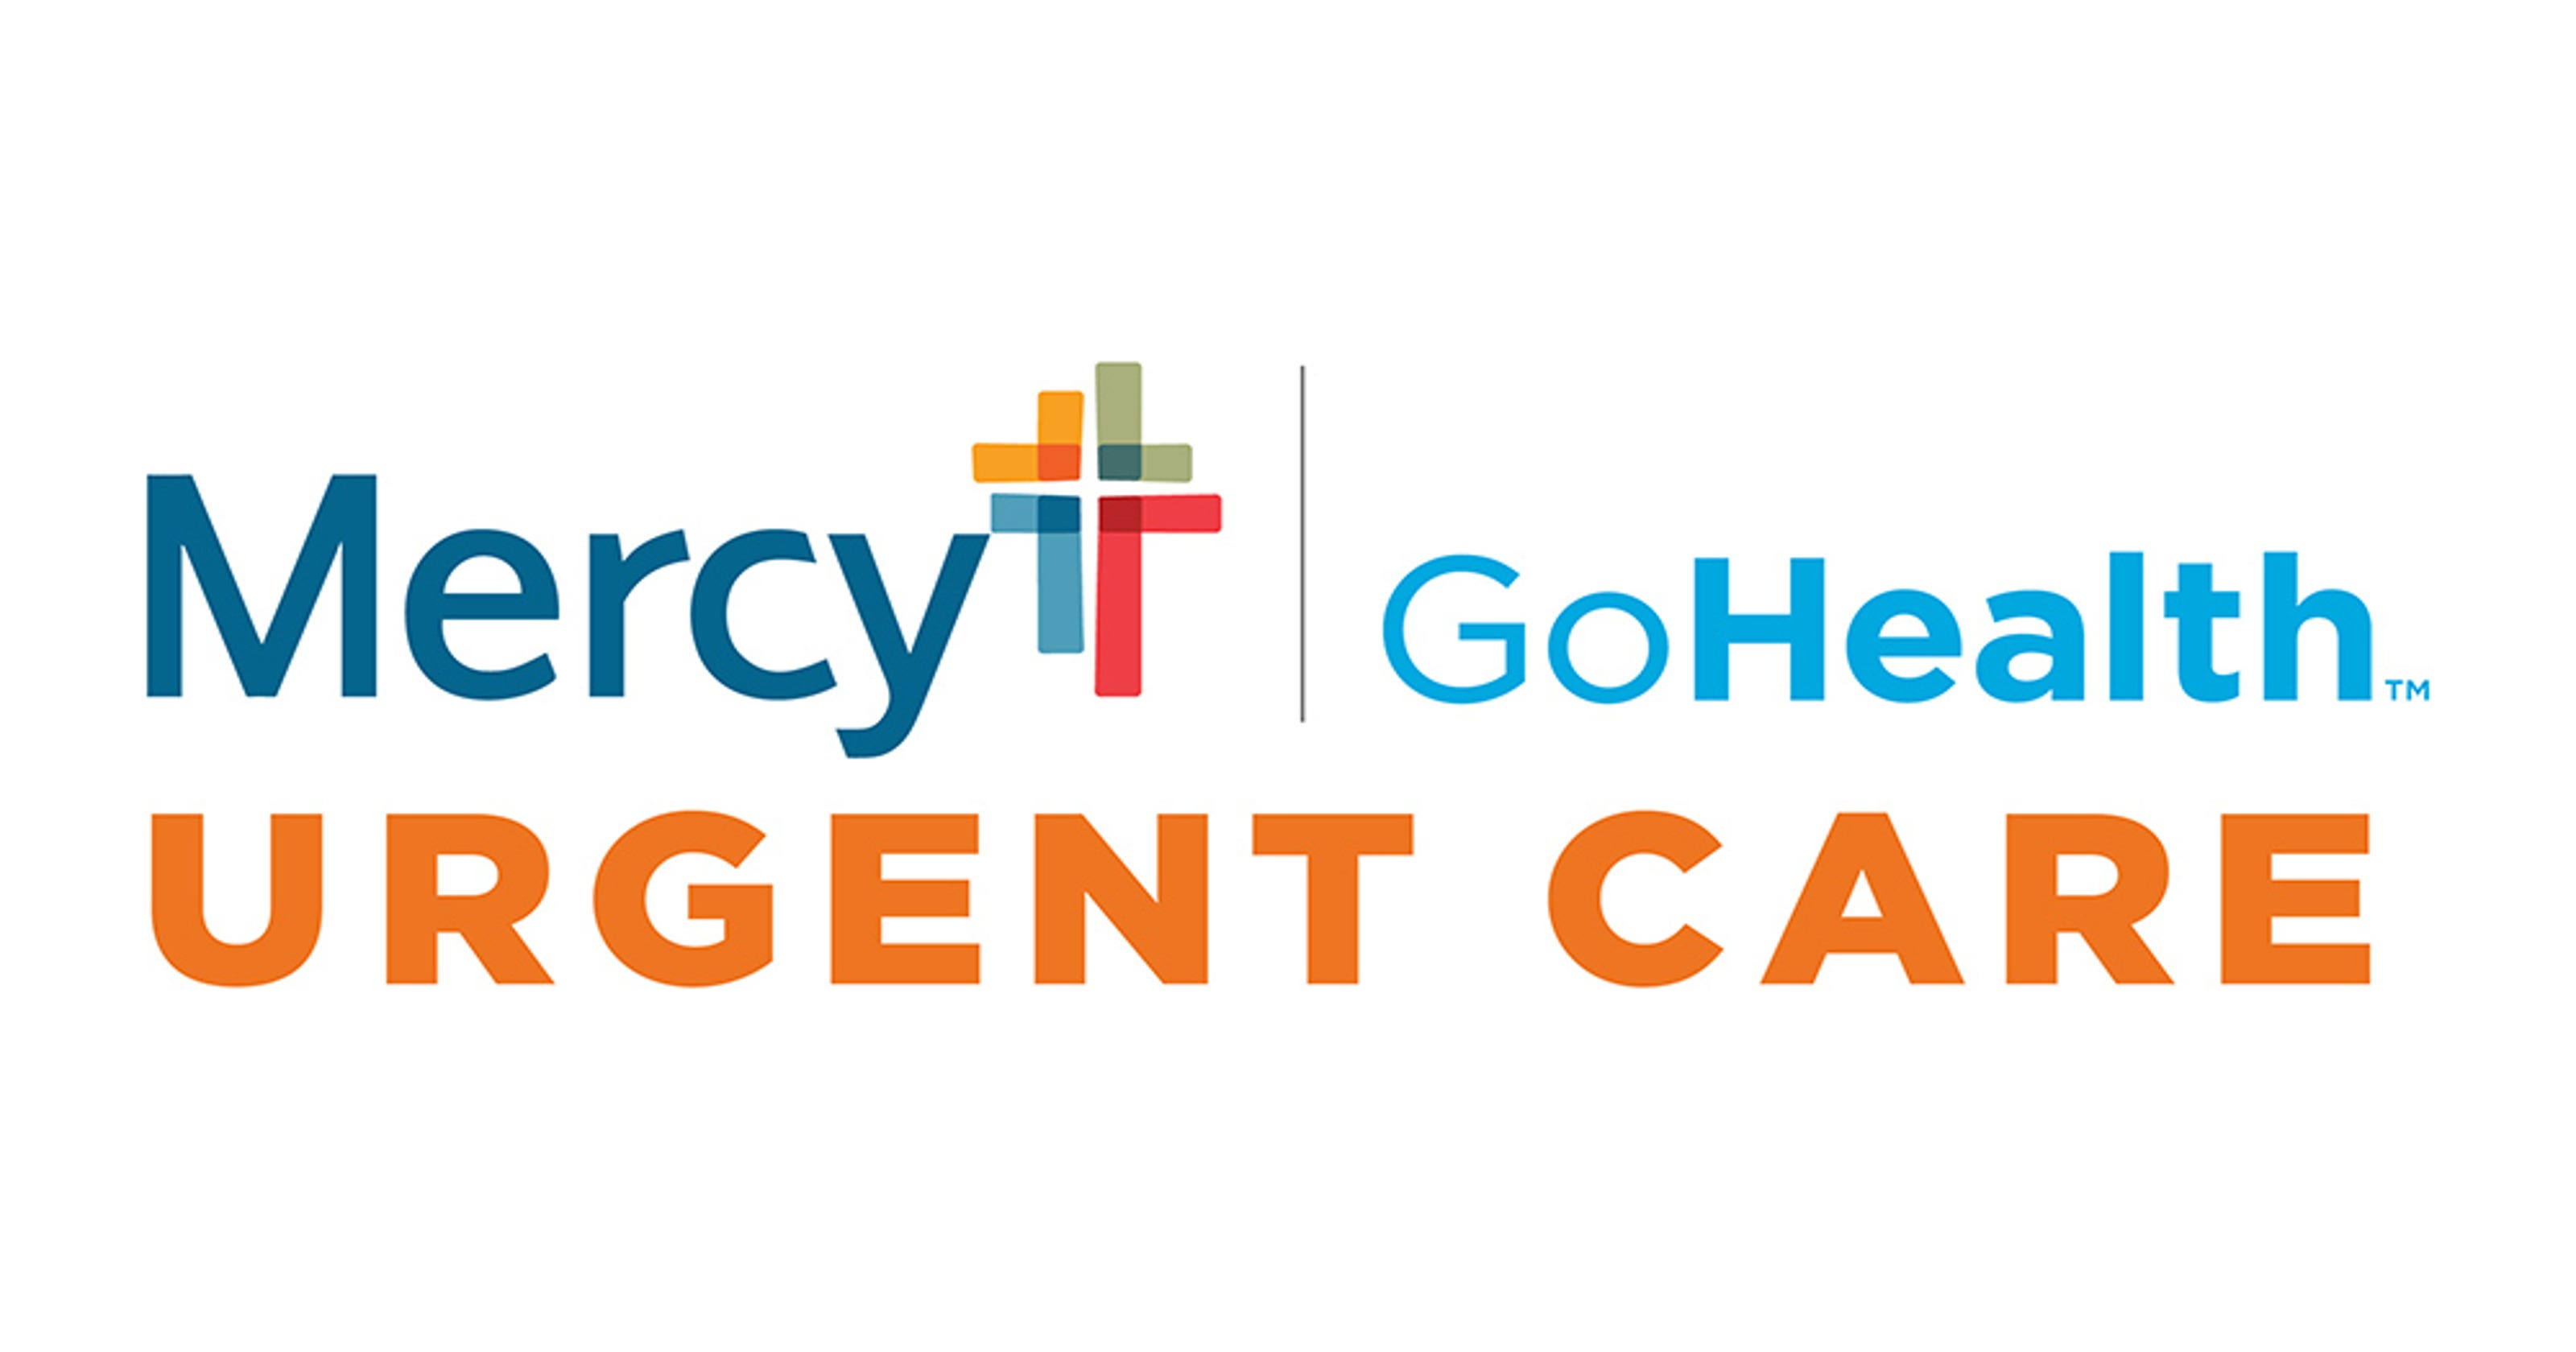 Mercy And Gohealth Open Urgent Care Centers In Missouri And Oklahoma